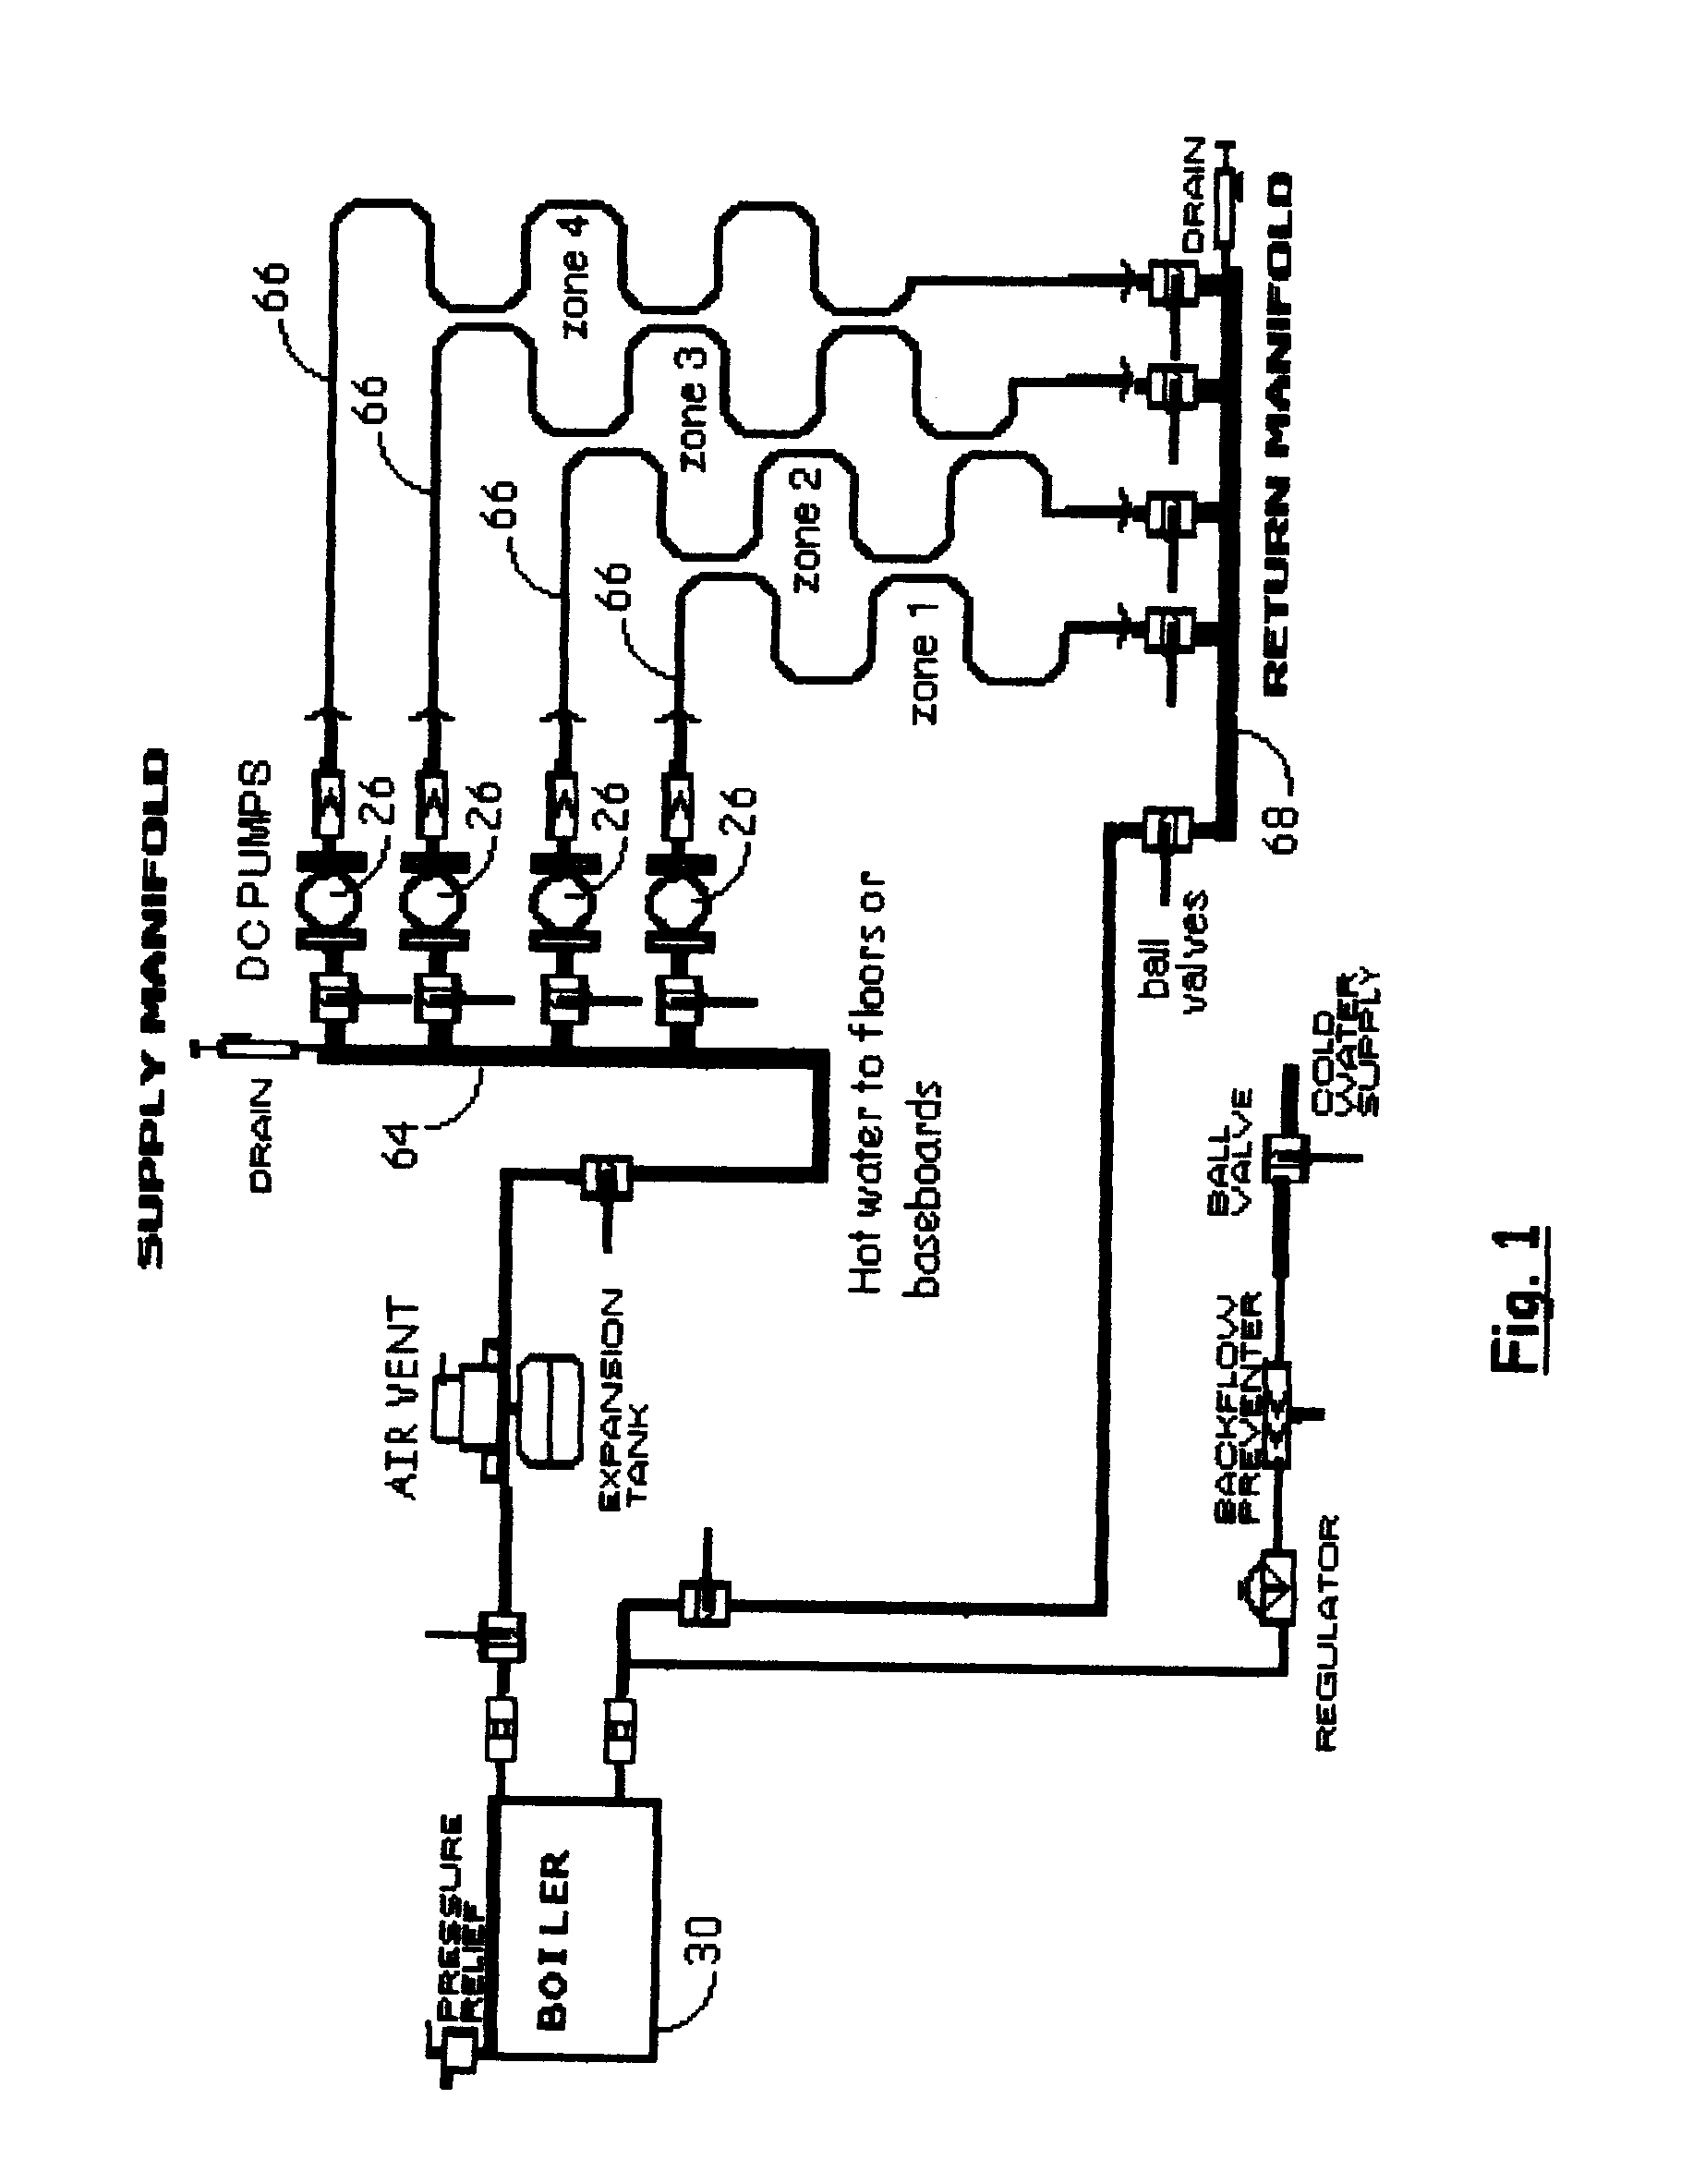 two way switch connection wiring diagram database Grasslin Timer Wiring Diagram troubleshoot troubleshoot three way switch 6 terminal switch wiring 2 way images of troubleshoot three